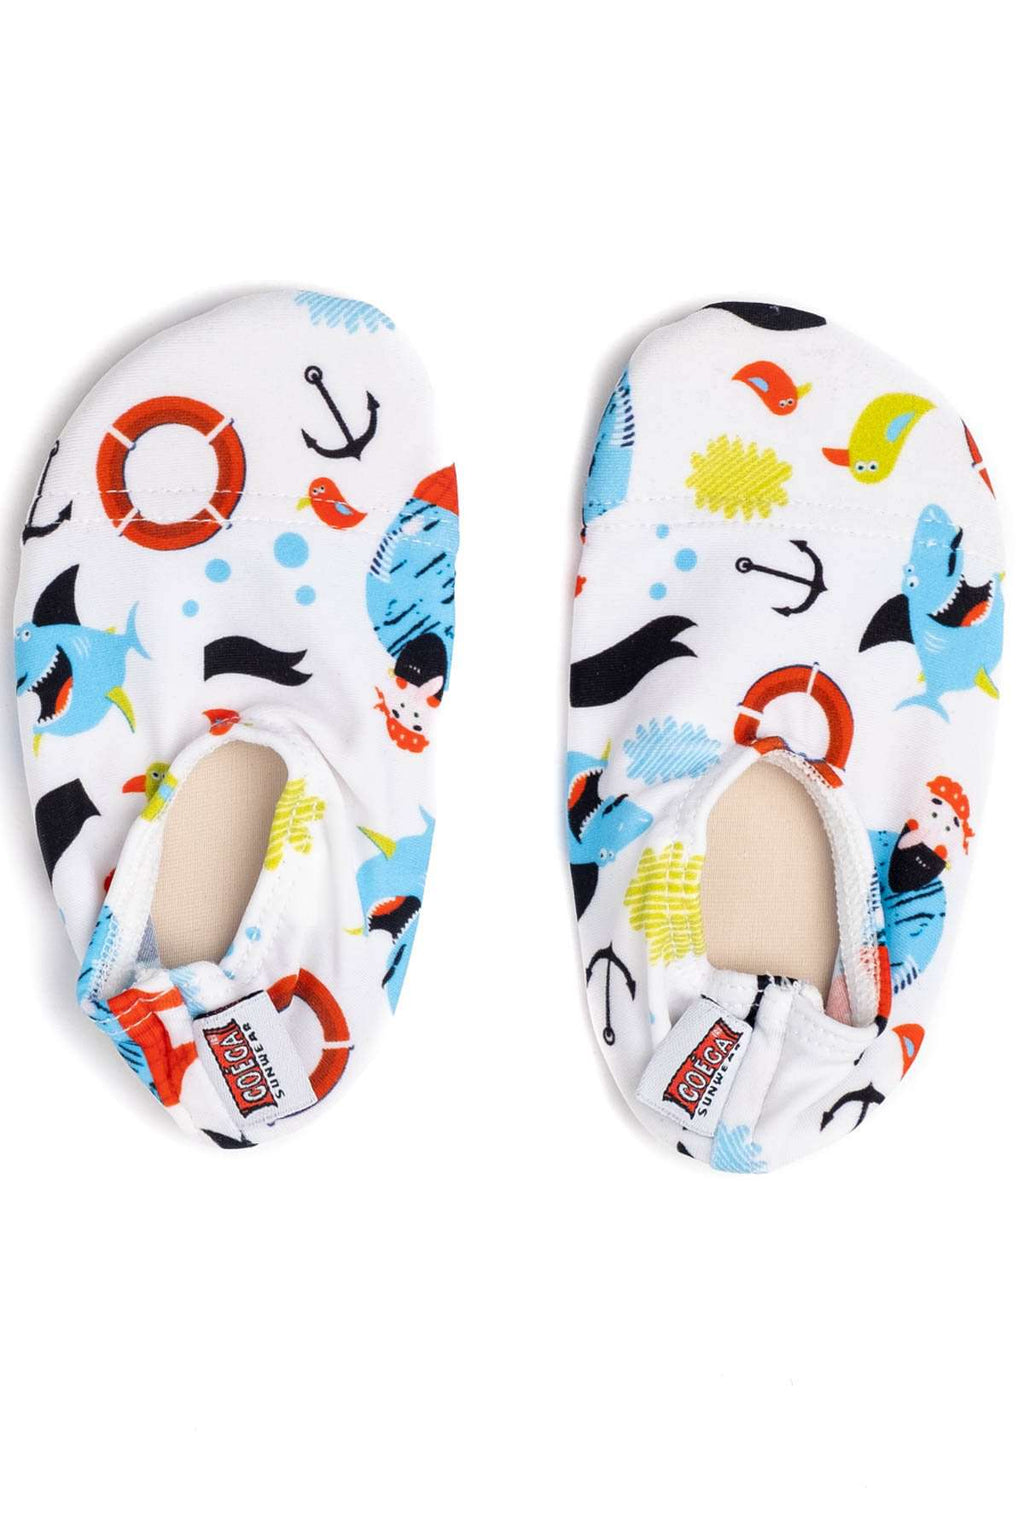 Aqua Pirate / Infant